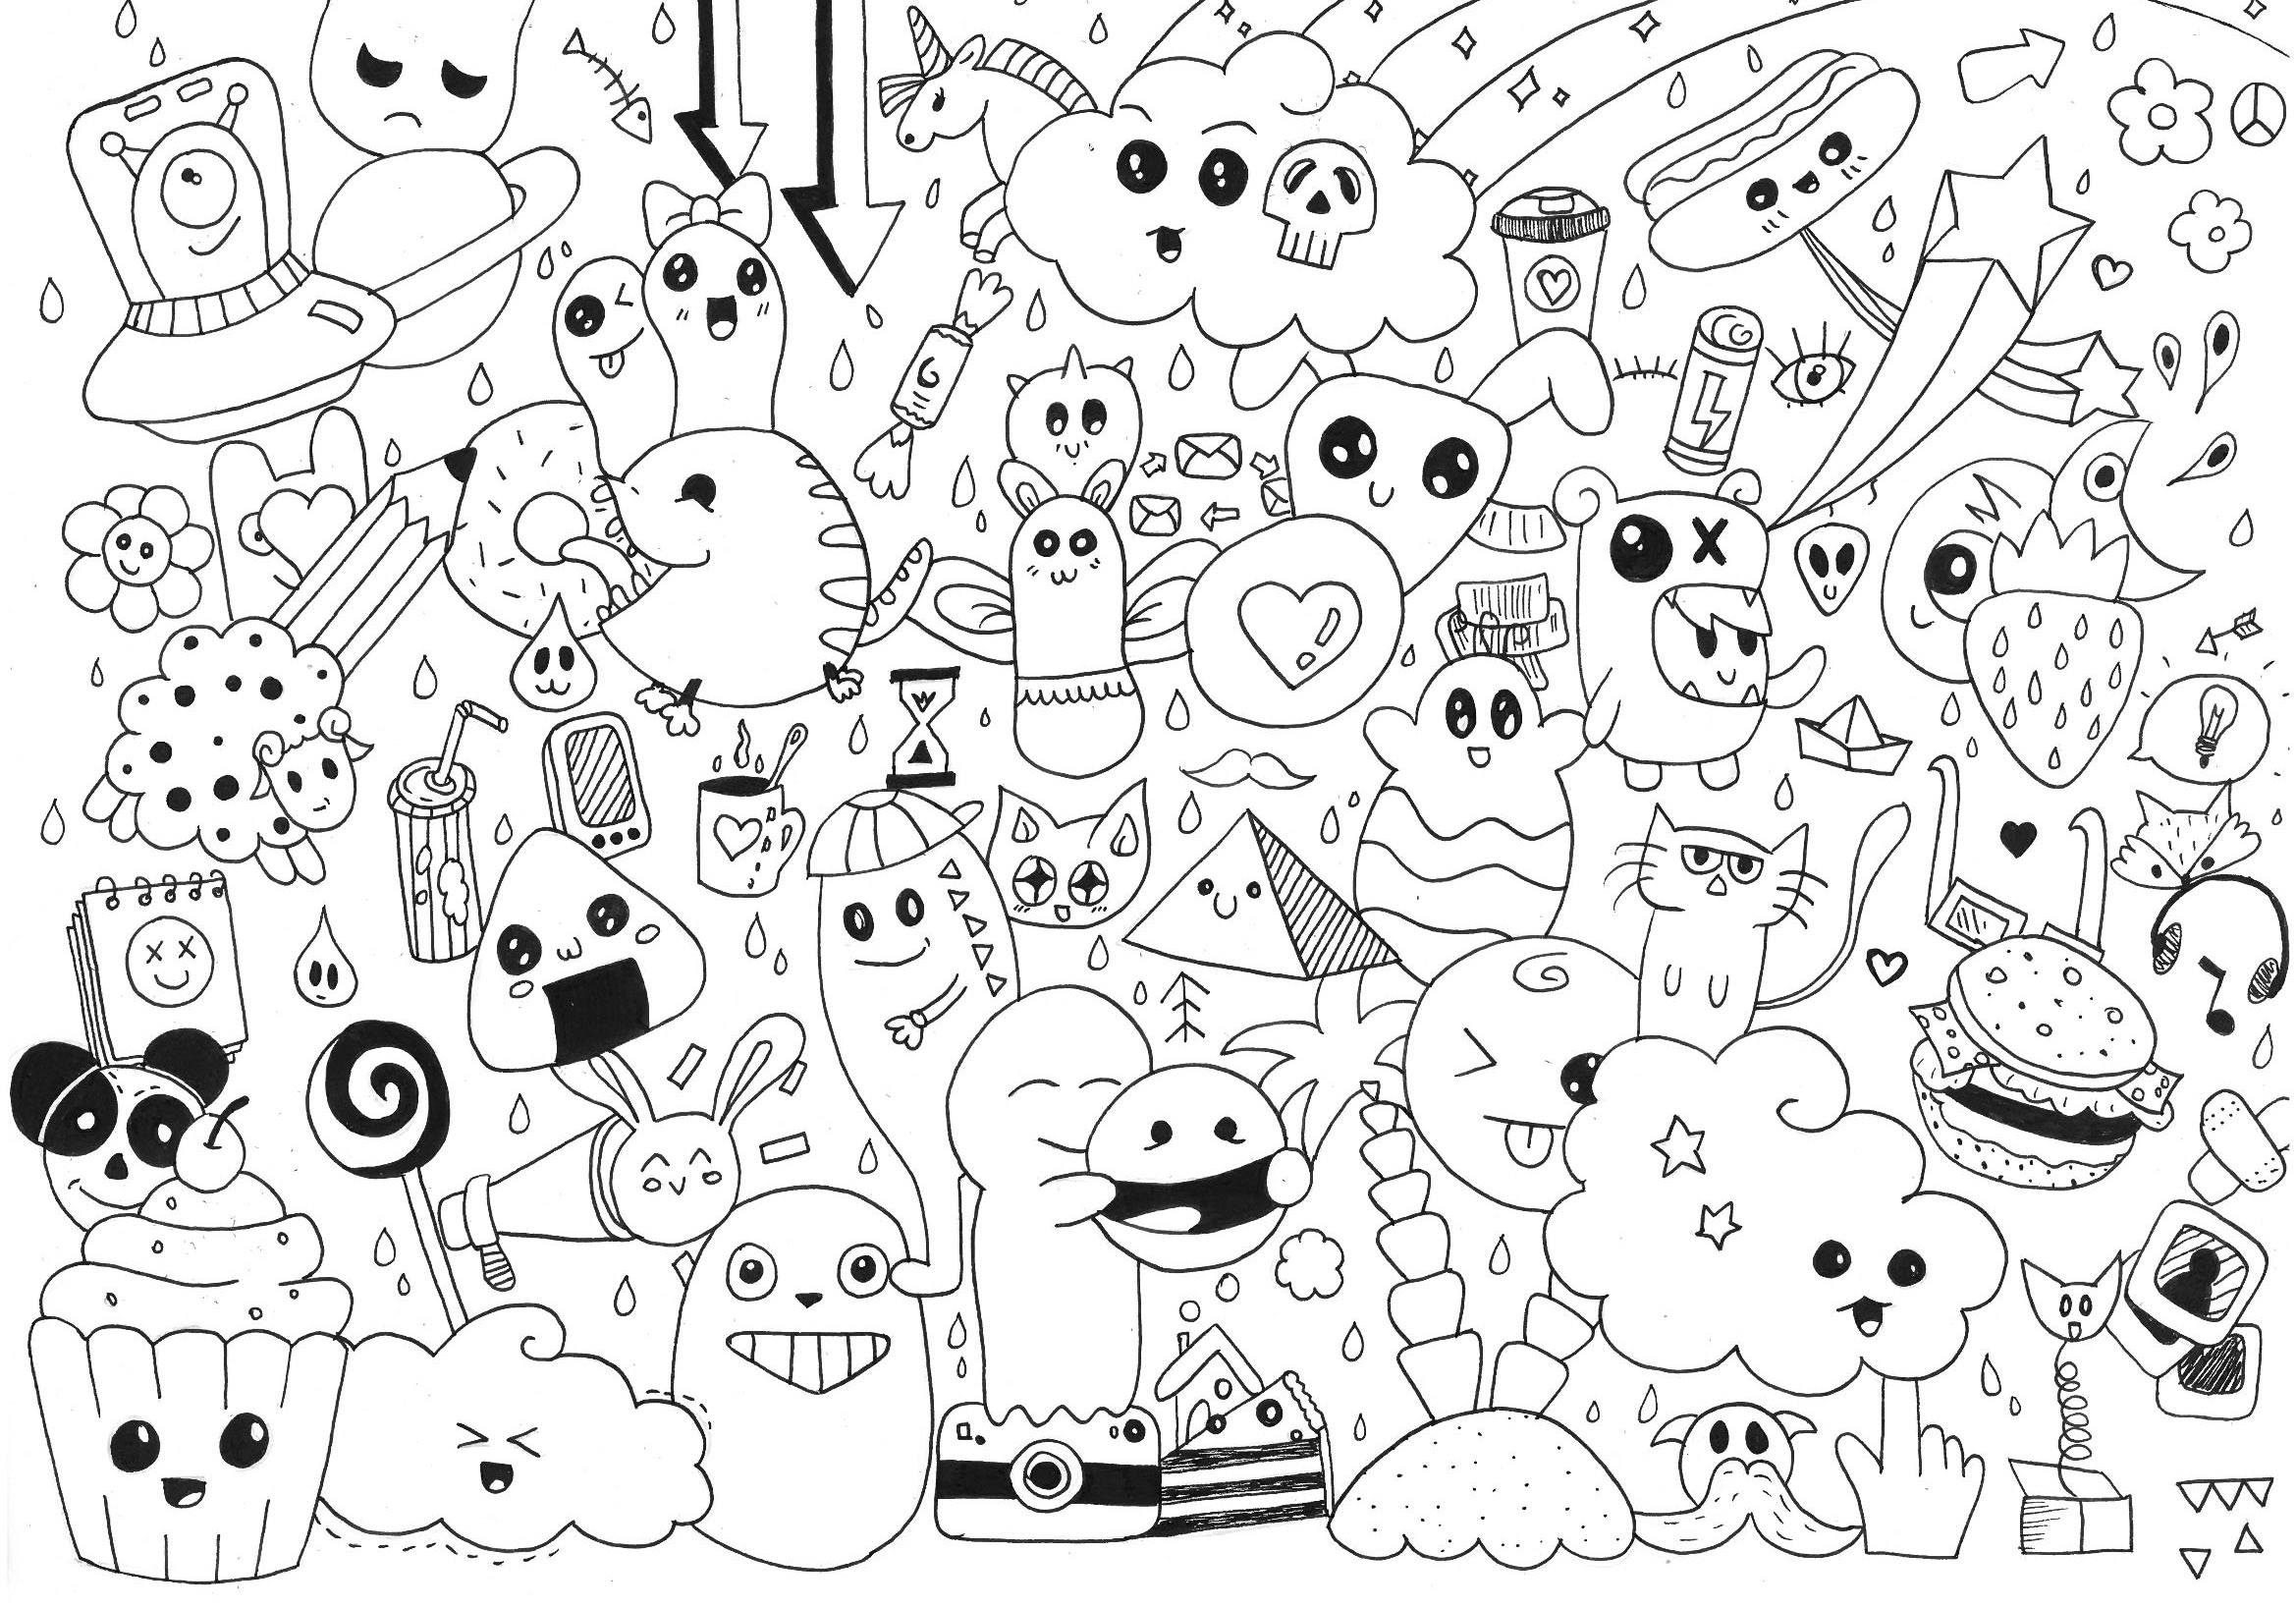 Simple Kawaii Coloring Page For Kids